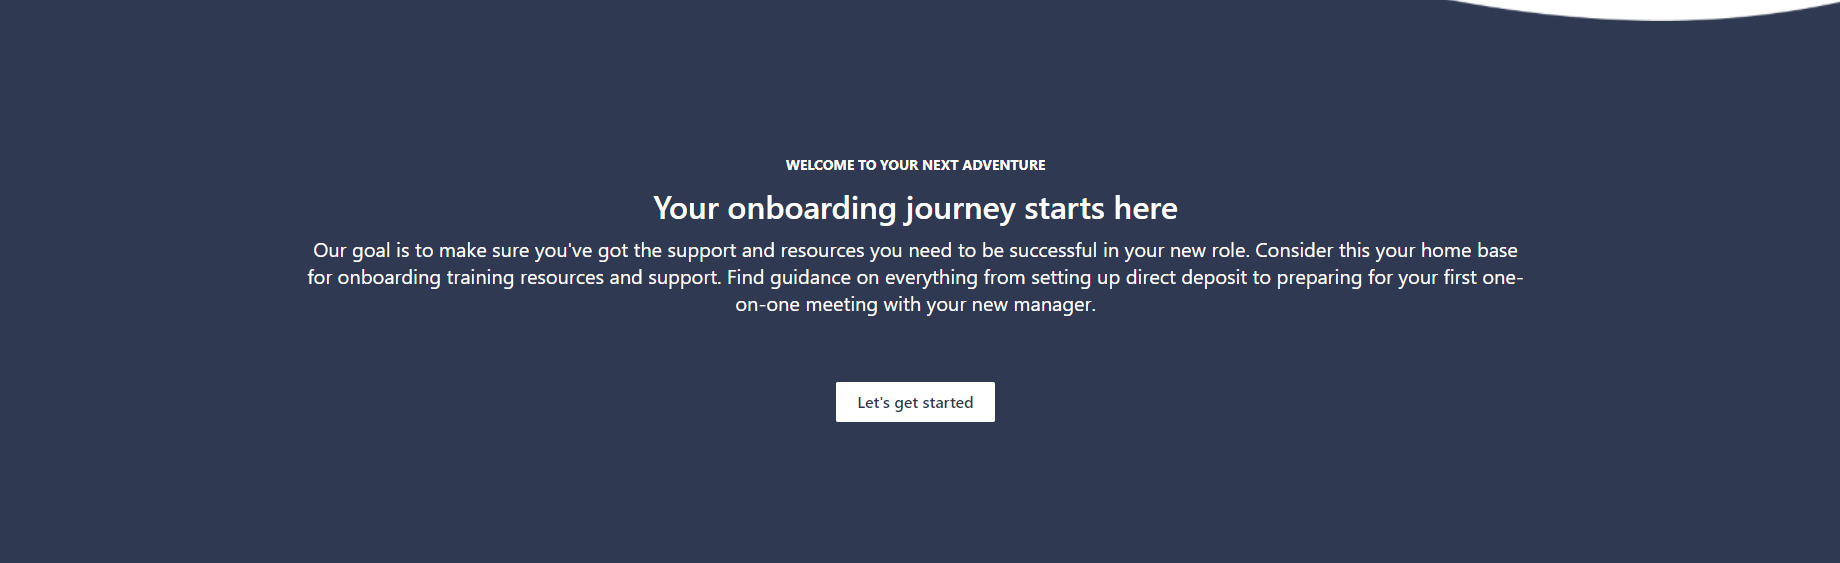 Employee Onboarding Site Layout Example 8